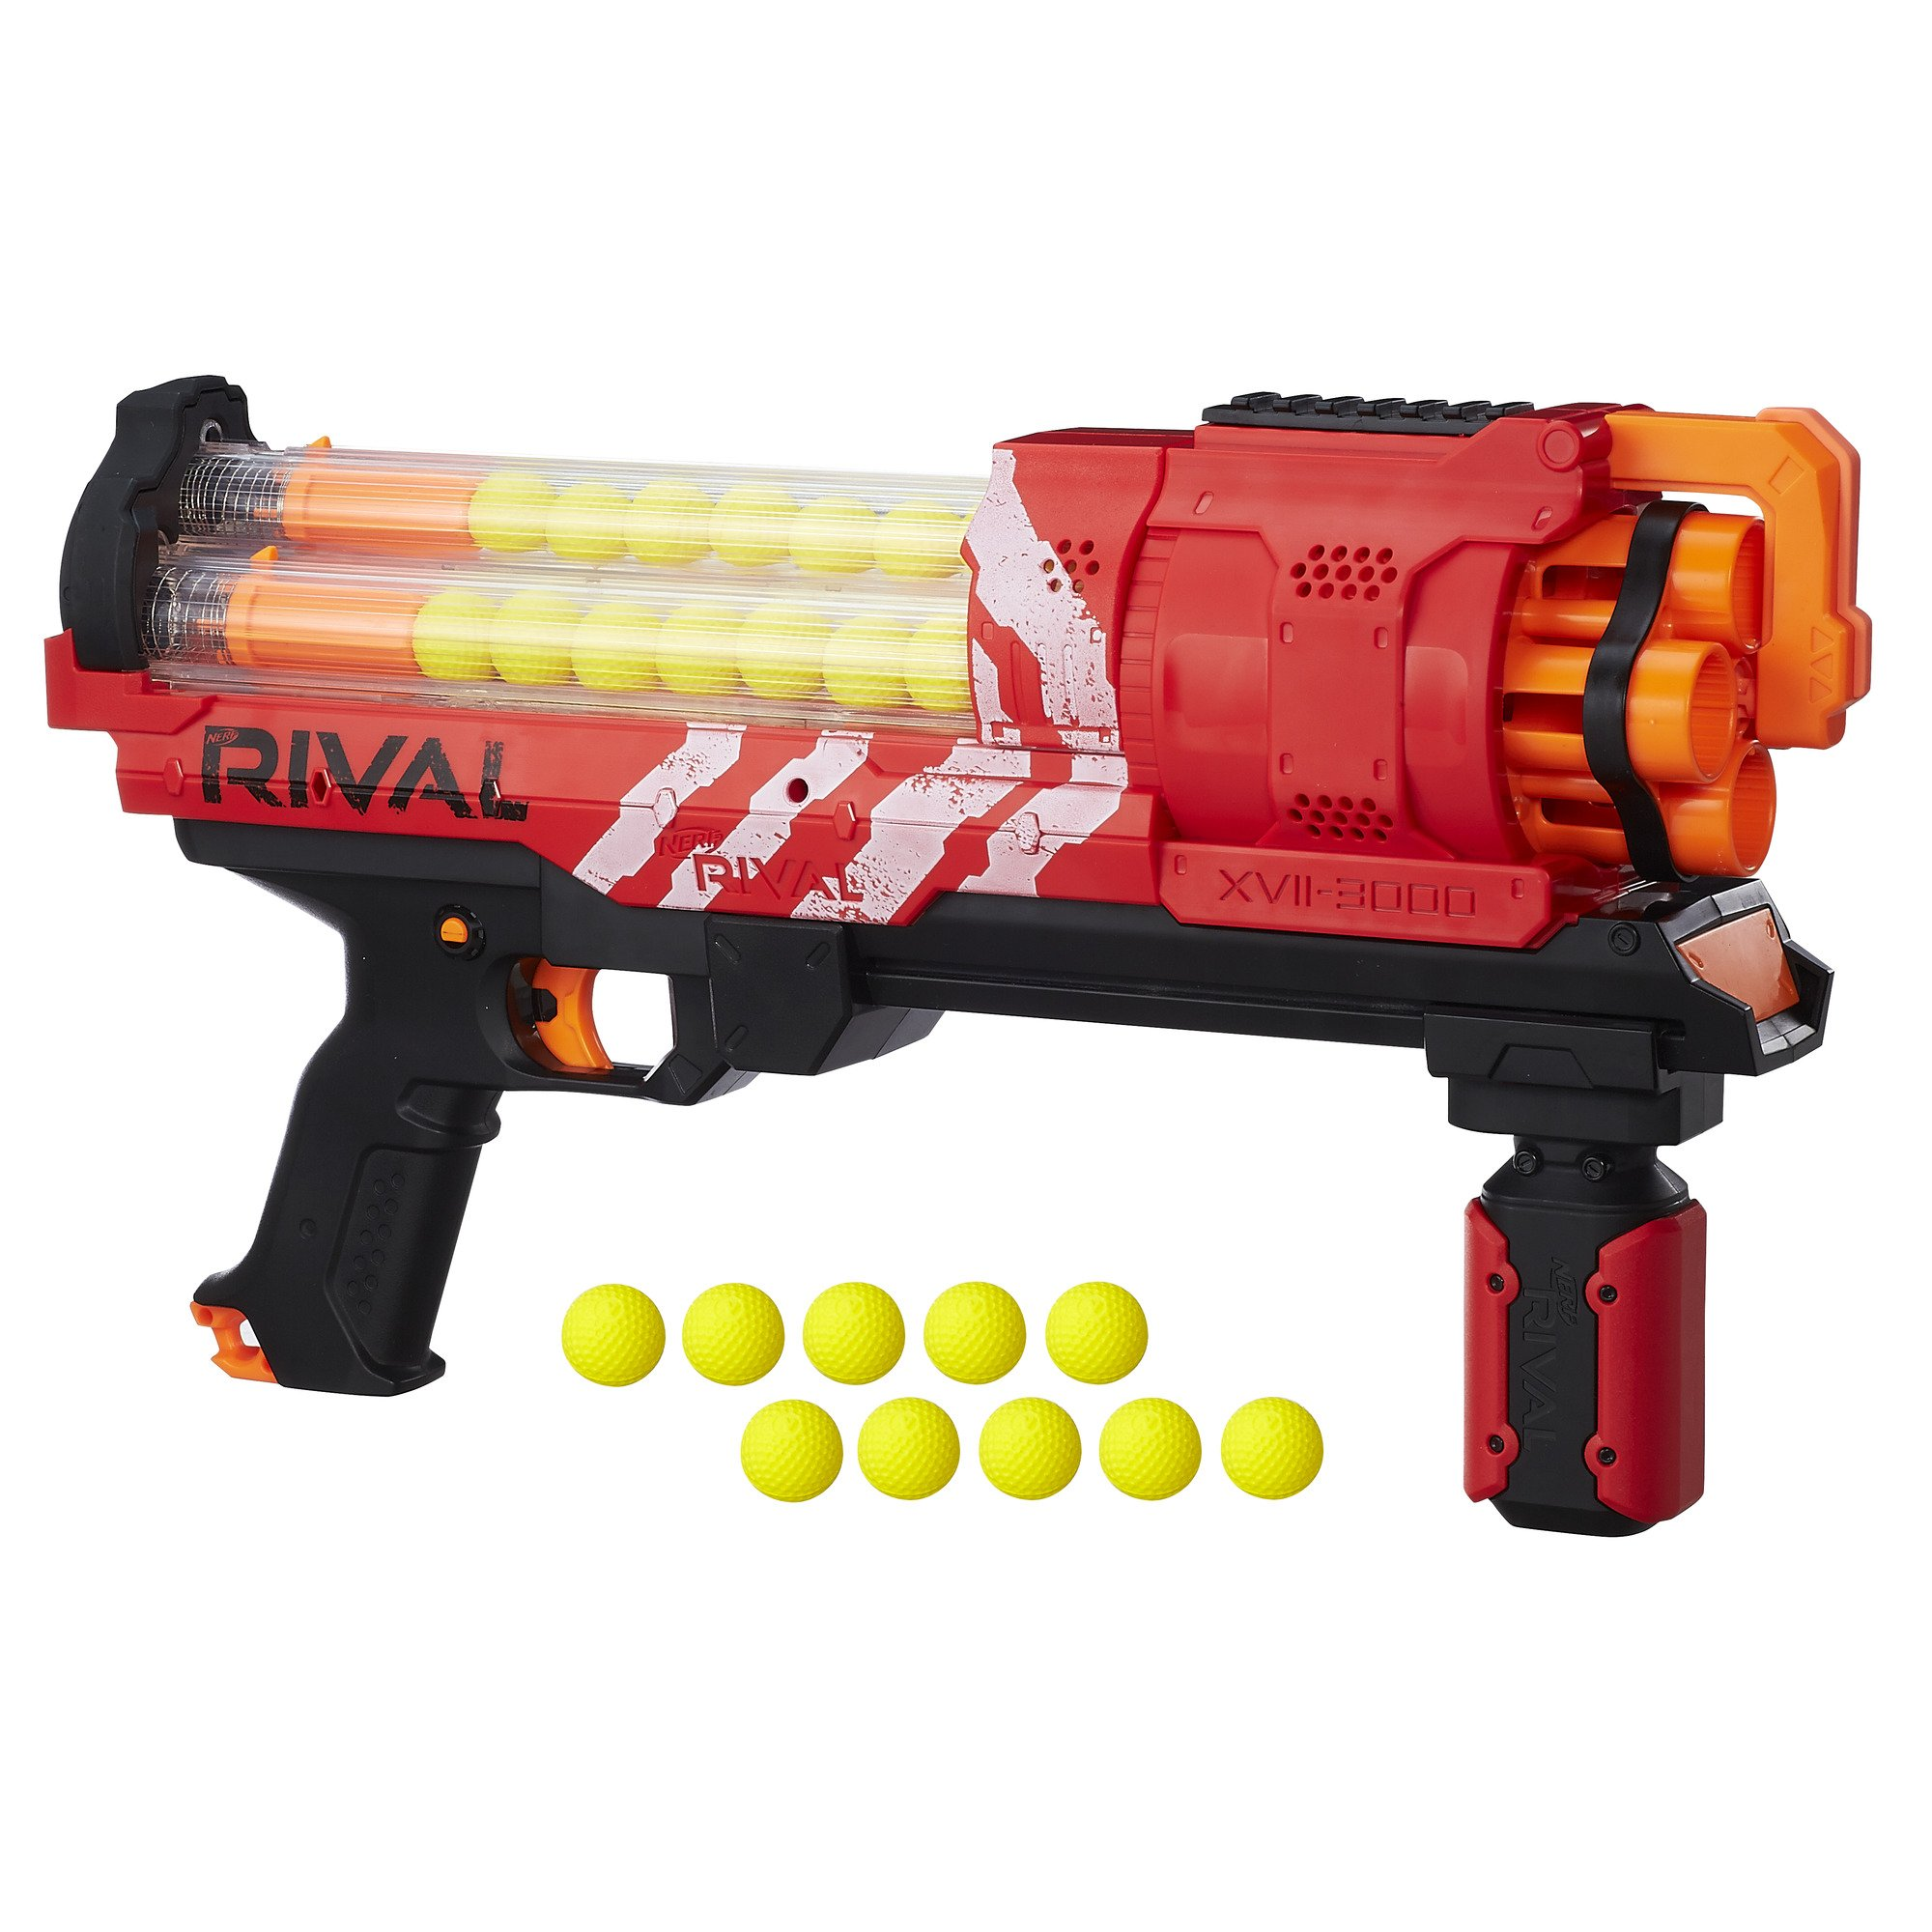 NERF Rival Artemis XVII-3000 Red by NERF